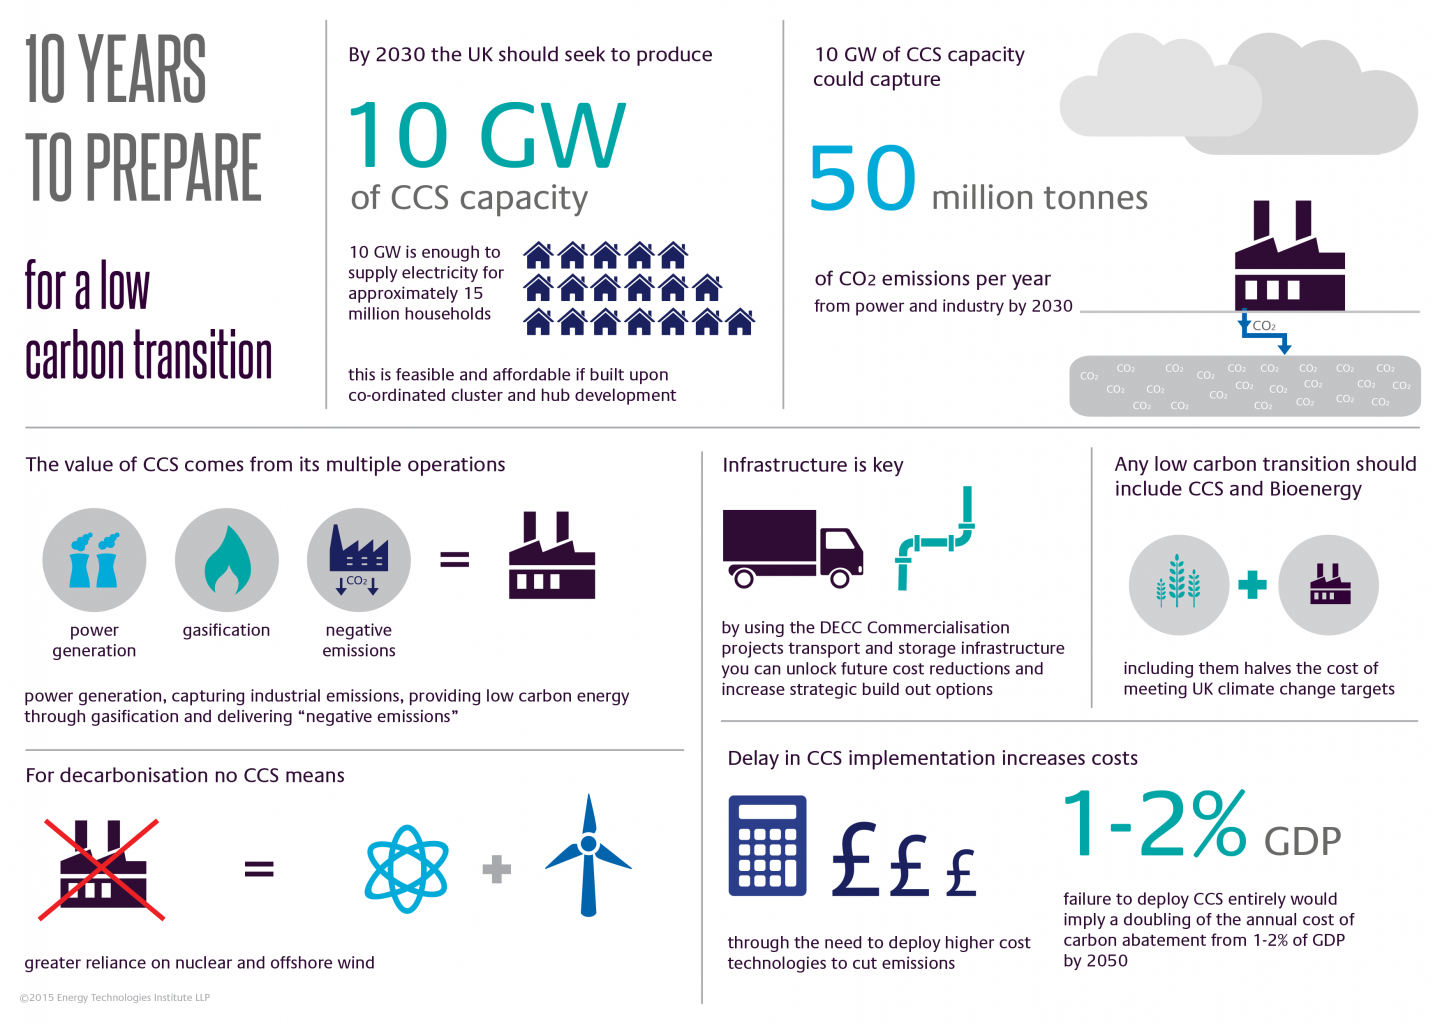 http://www.eti.co.uk/wp-content/uploads/2015/03/CCS-Scenarios-Infographic1.png